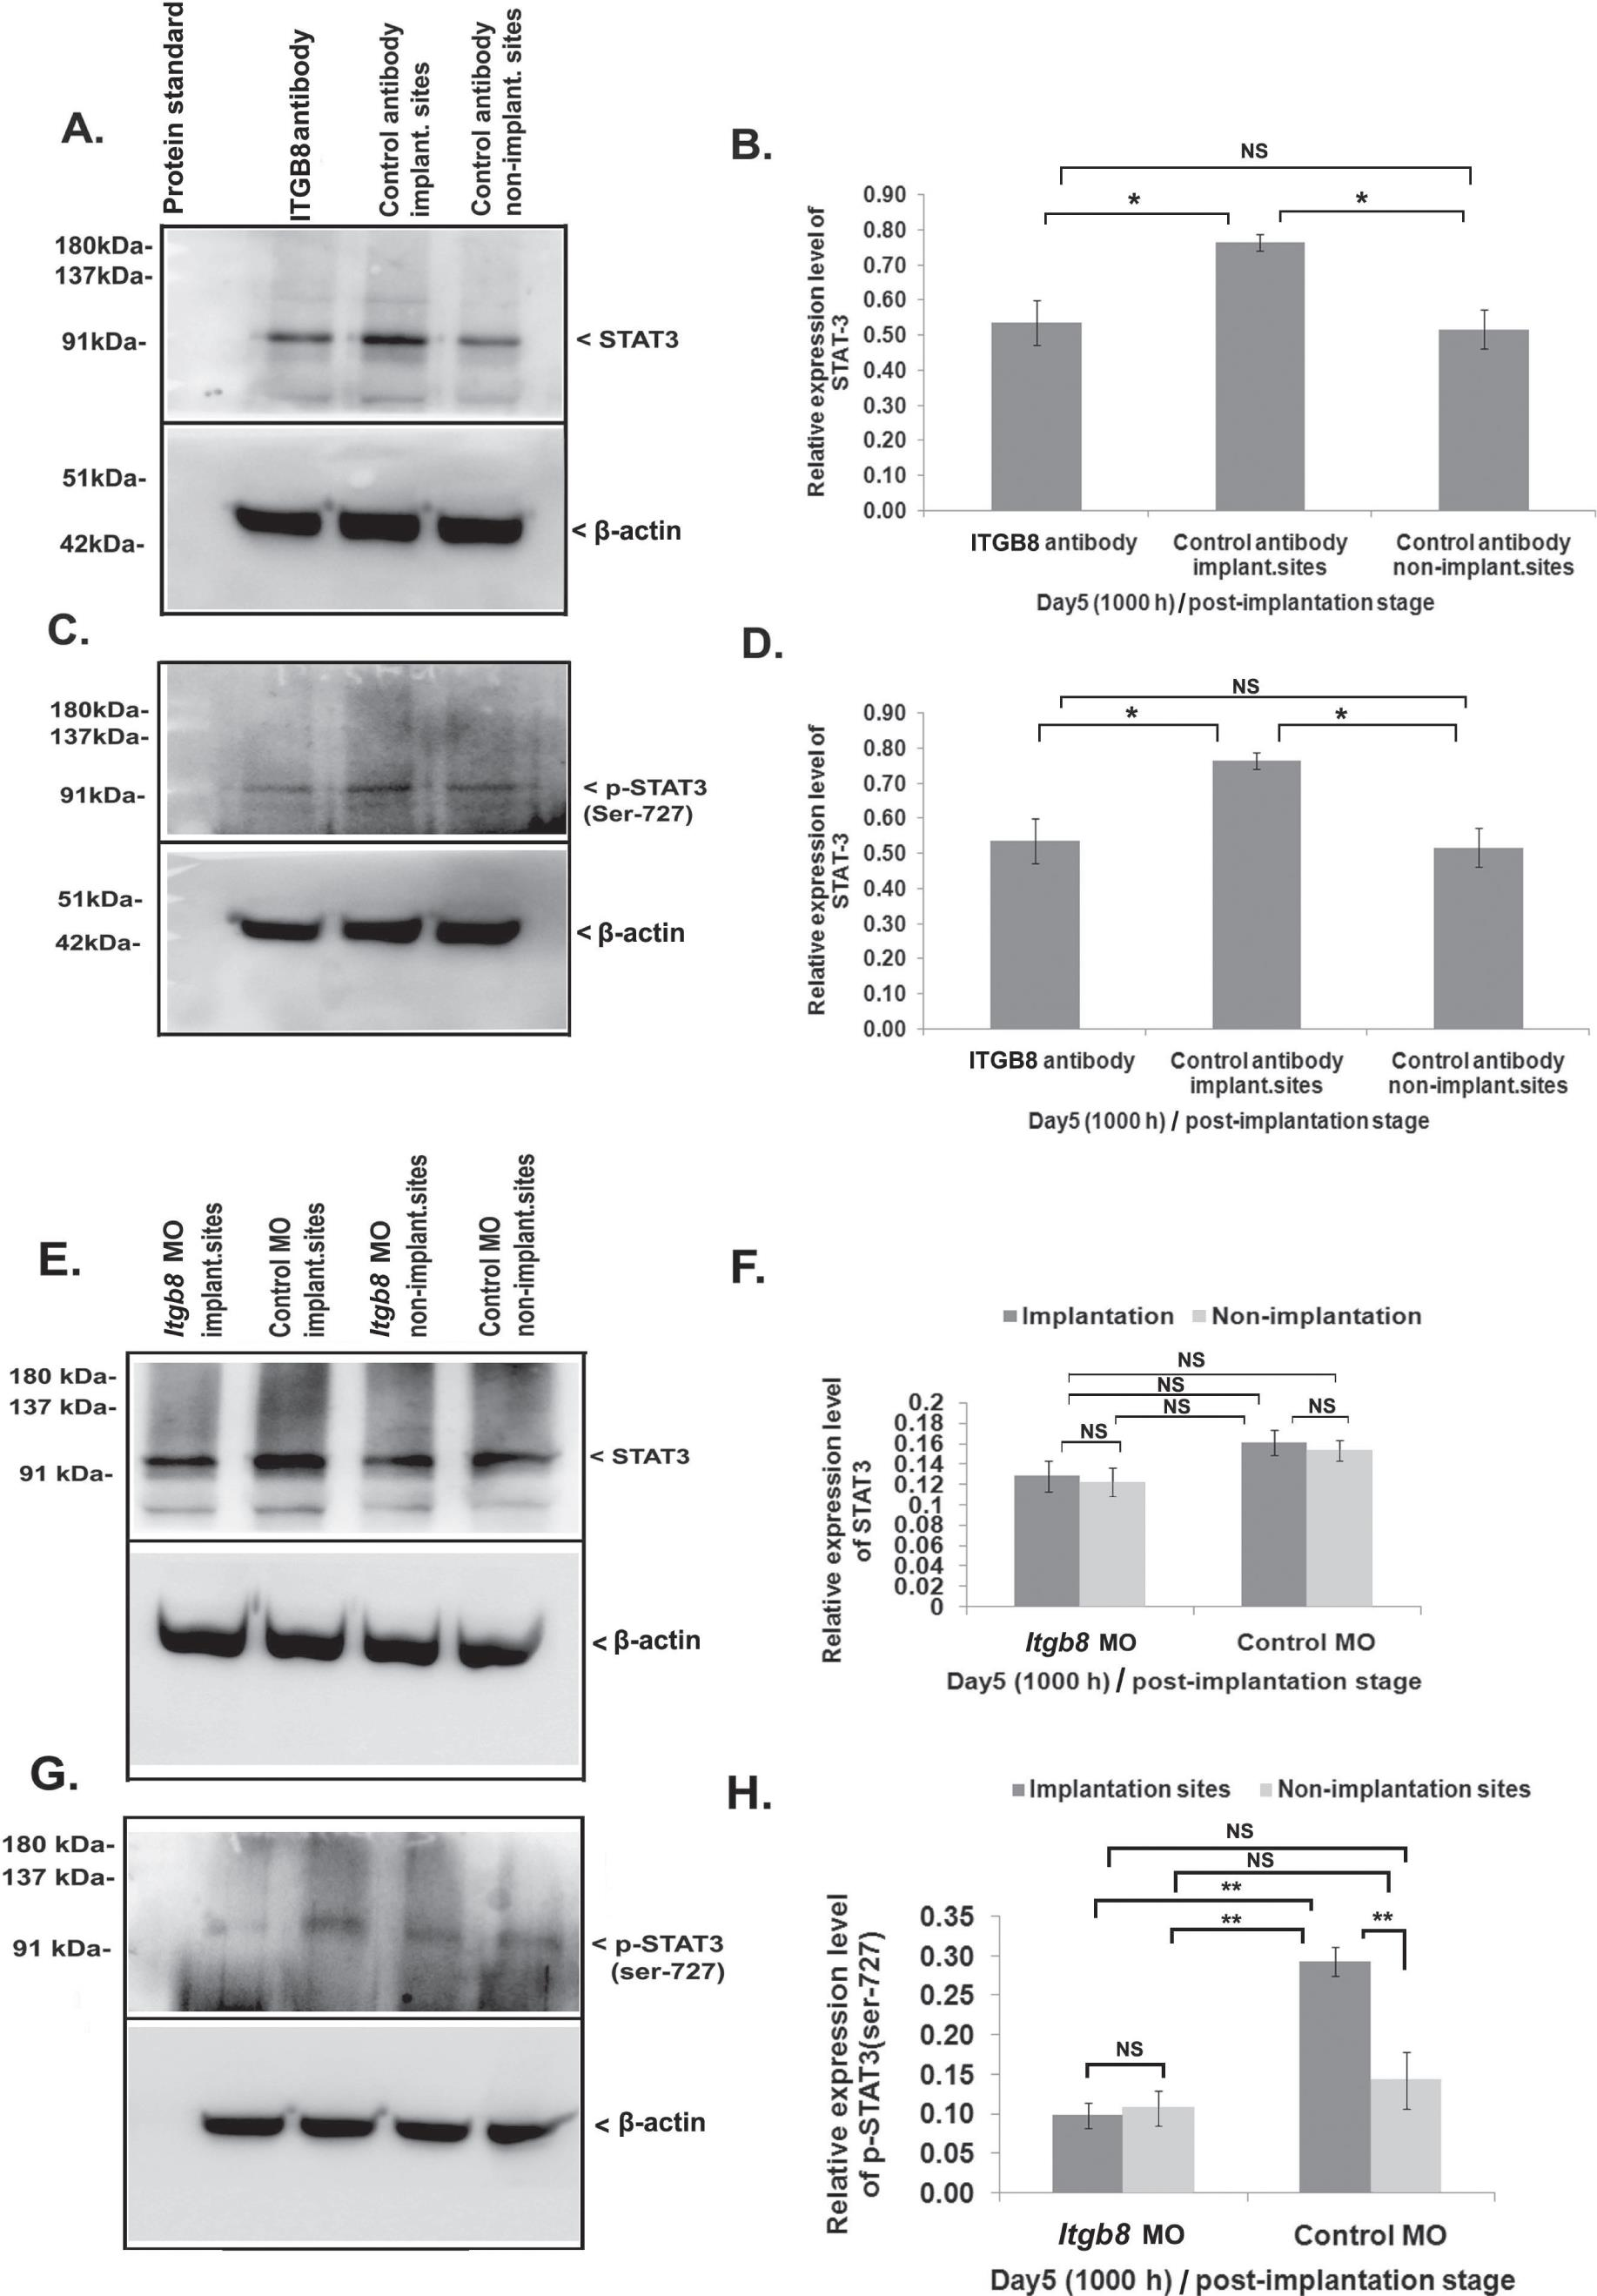 Integrin Beta 8 (ITGB8) Regulates Embryo Implantation